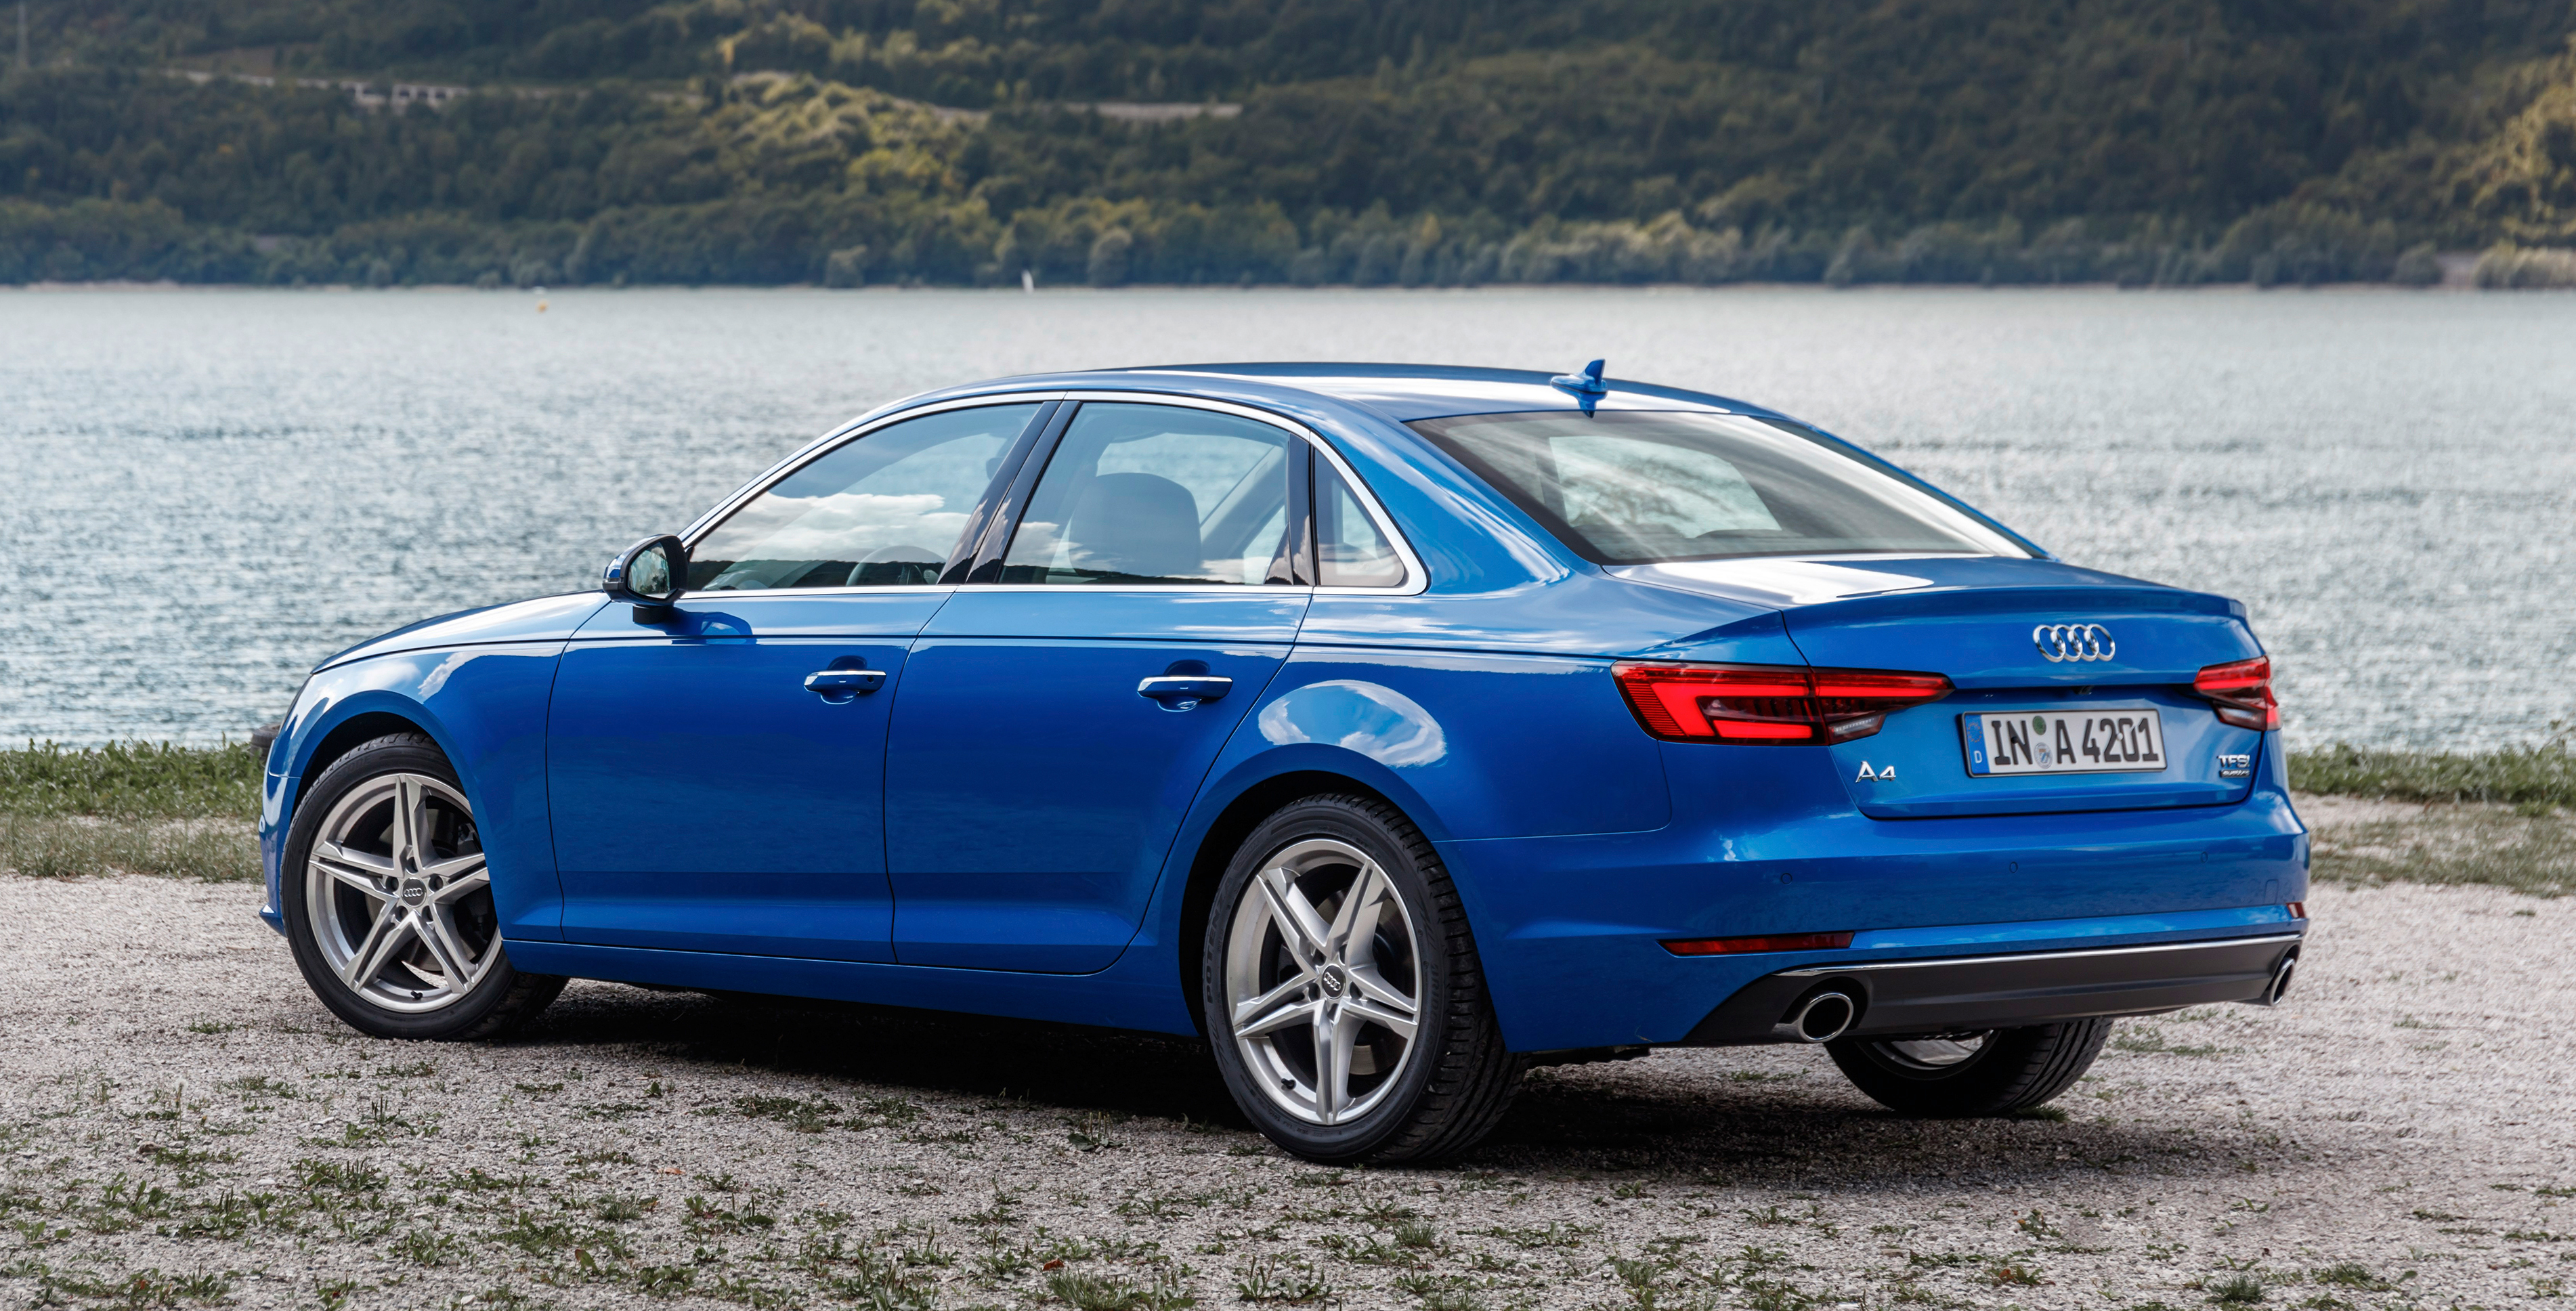 GALLERY: Audi A4 B9 on location in Venice, Italy Image 384233